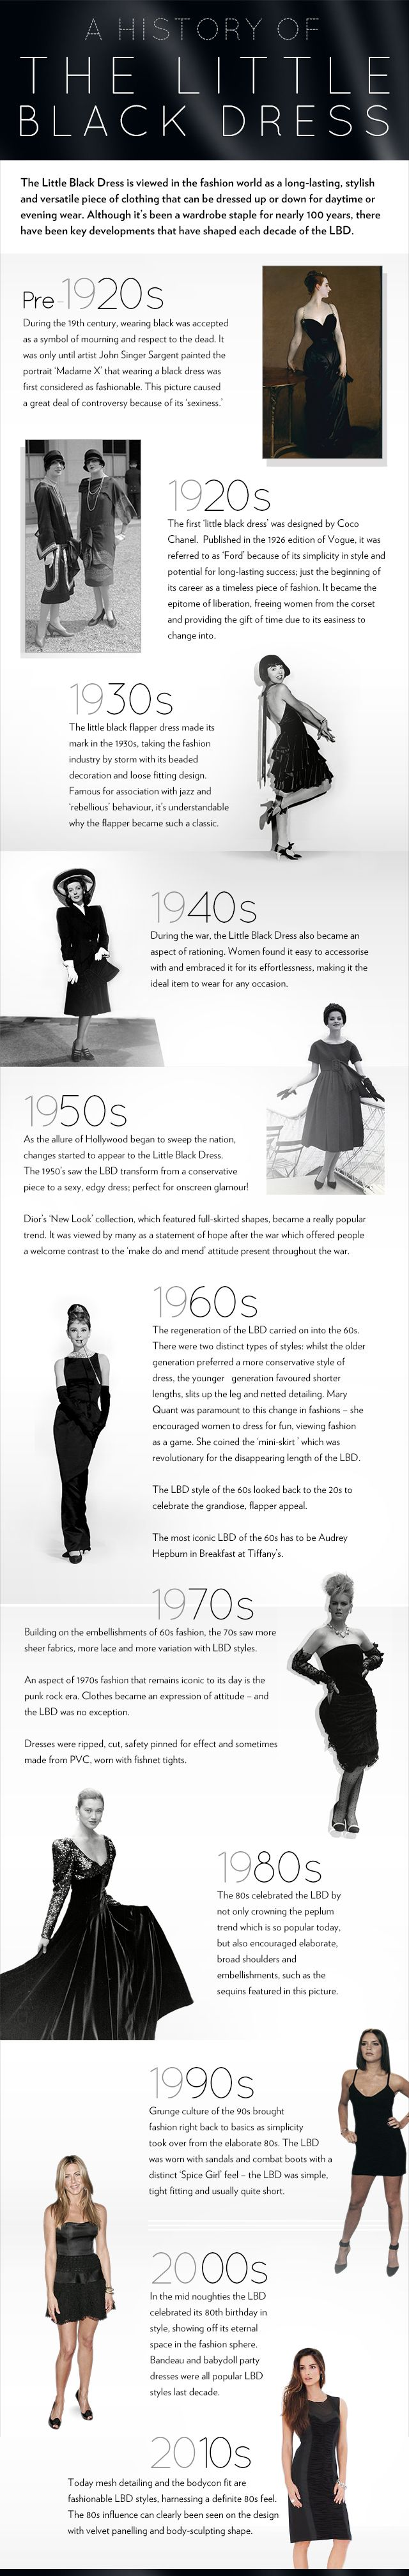 History of the Little Black Dress #INFOGRAPHIC #infografía